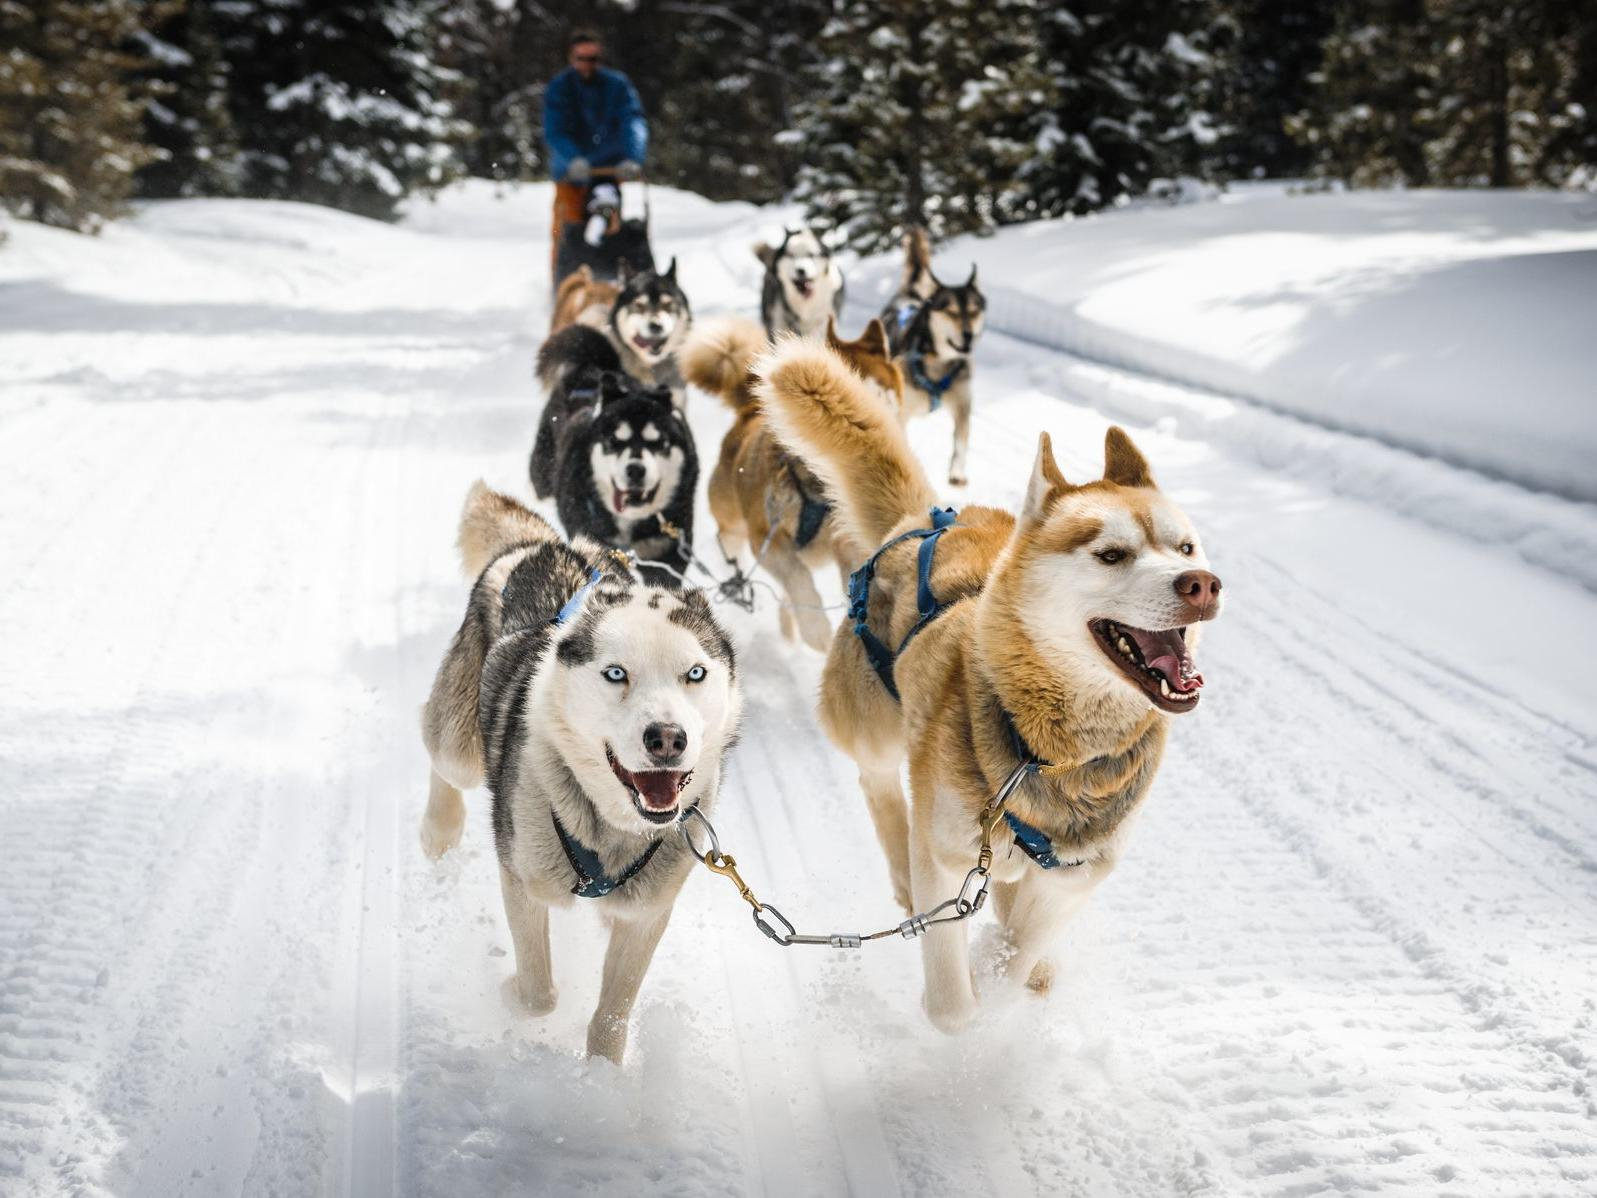 Huskies leading a dogsled at high speeds.